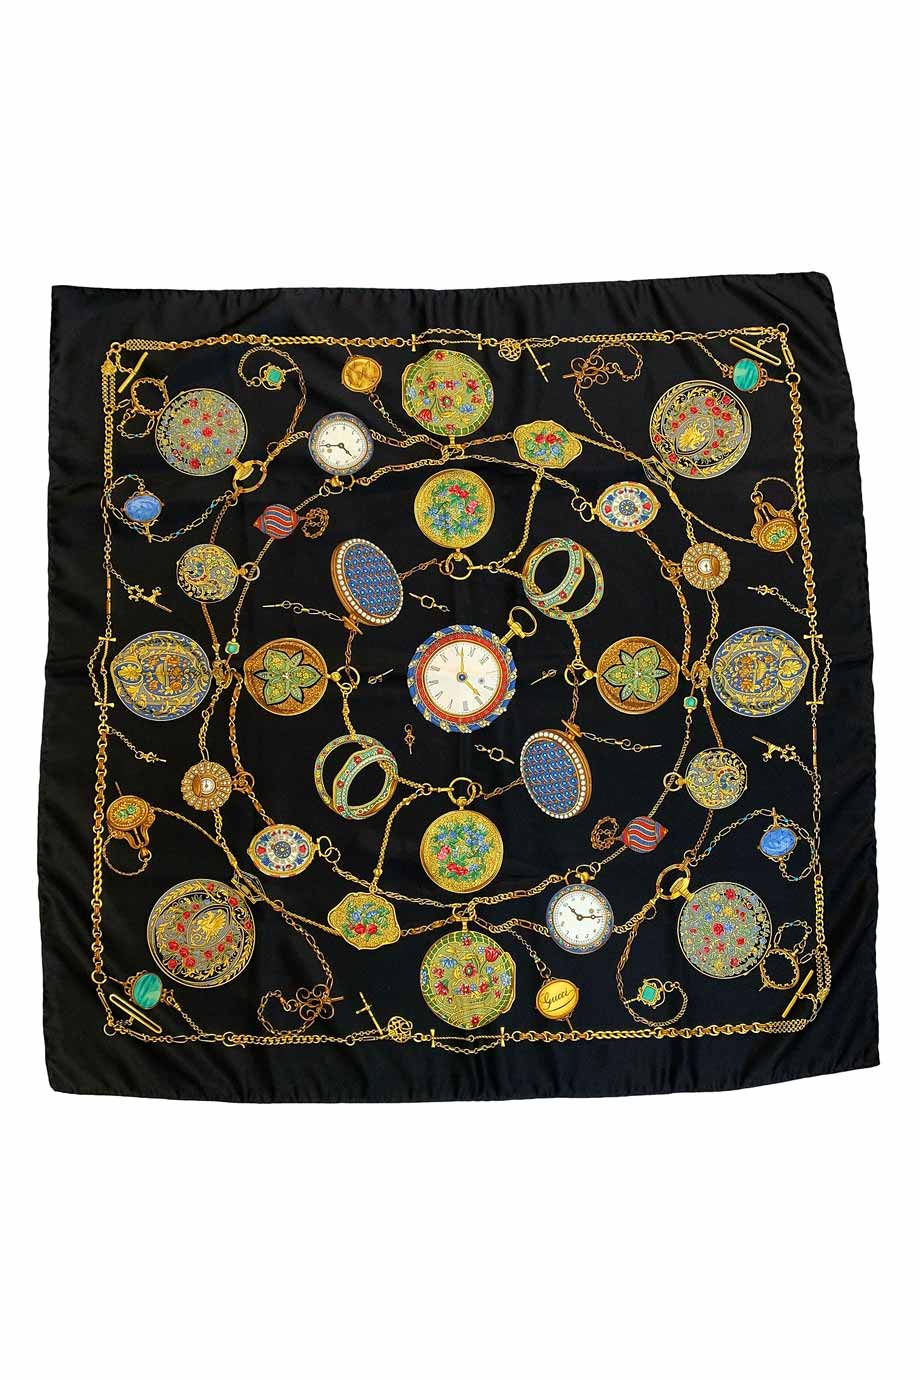 "Gucci 34"" Black Multi Pocket Watch Print Vintage Silk Scarf"